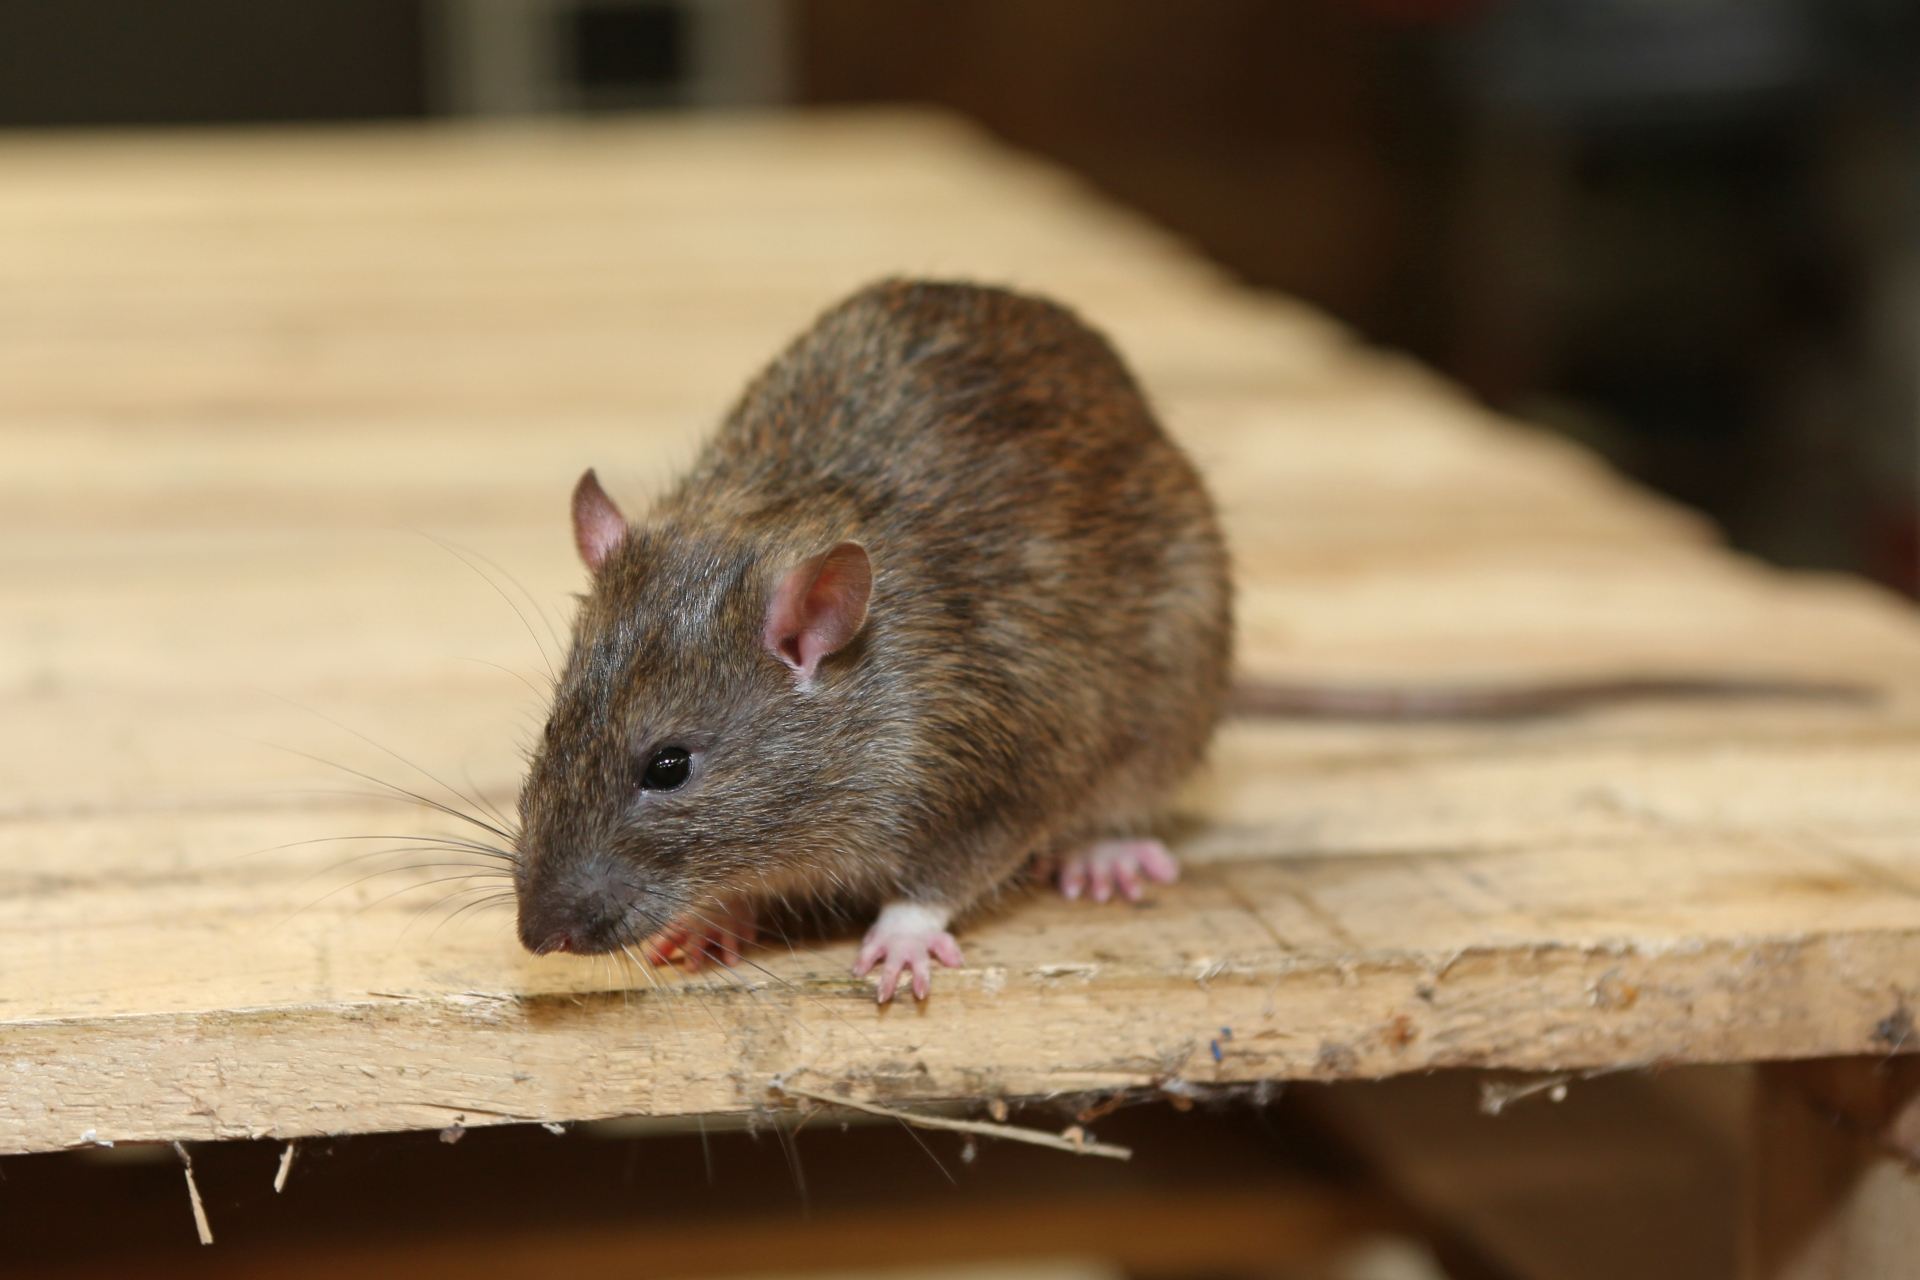 Rat extermination, Pest Control in Rickmansworth, Chorleywood, Croxley Green, WD3. Call Now 020 8166 9746